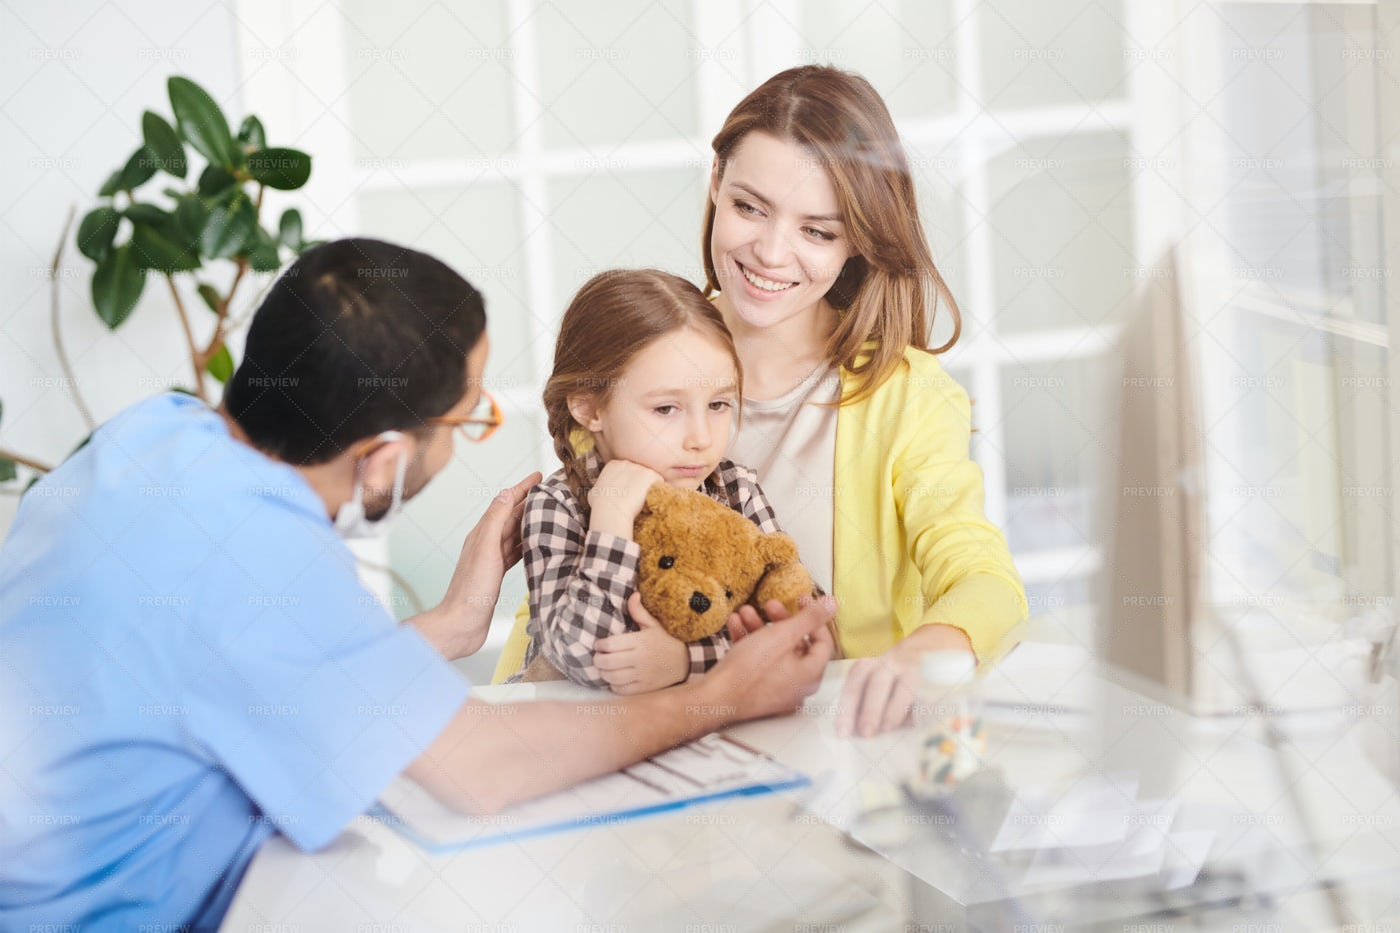 Scared Little Girl Visiting Doctor: Stock Photos